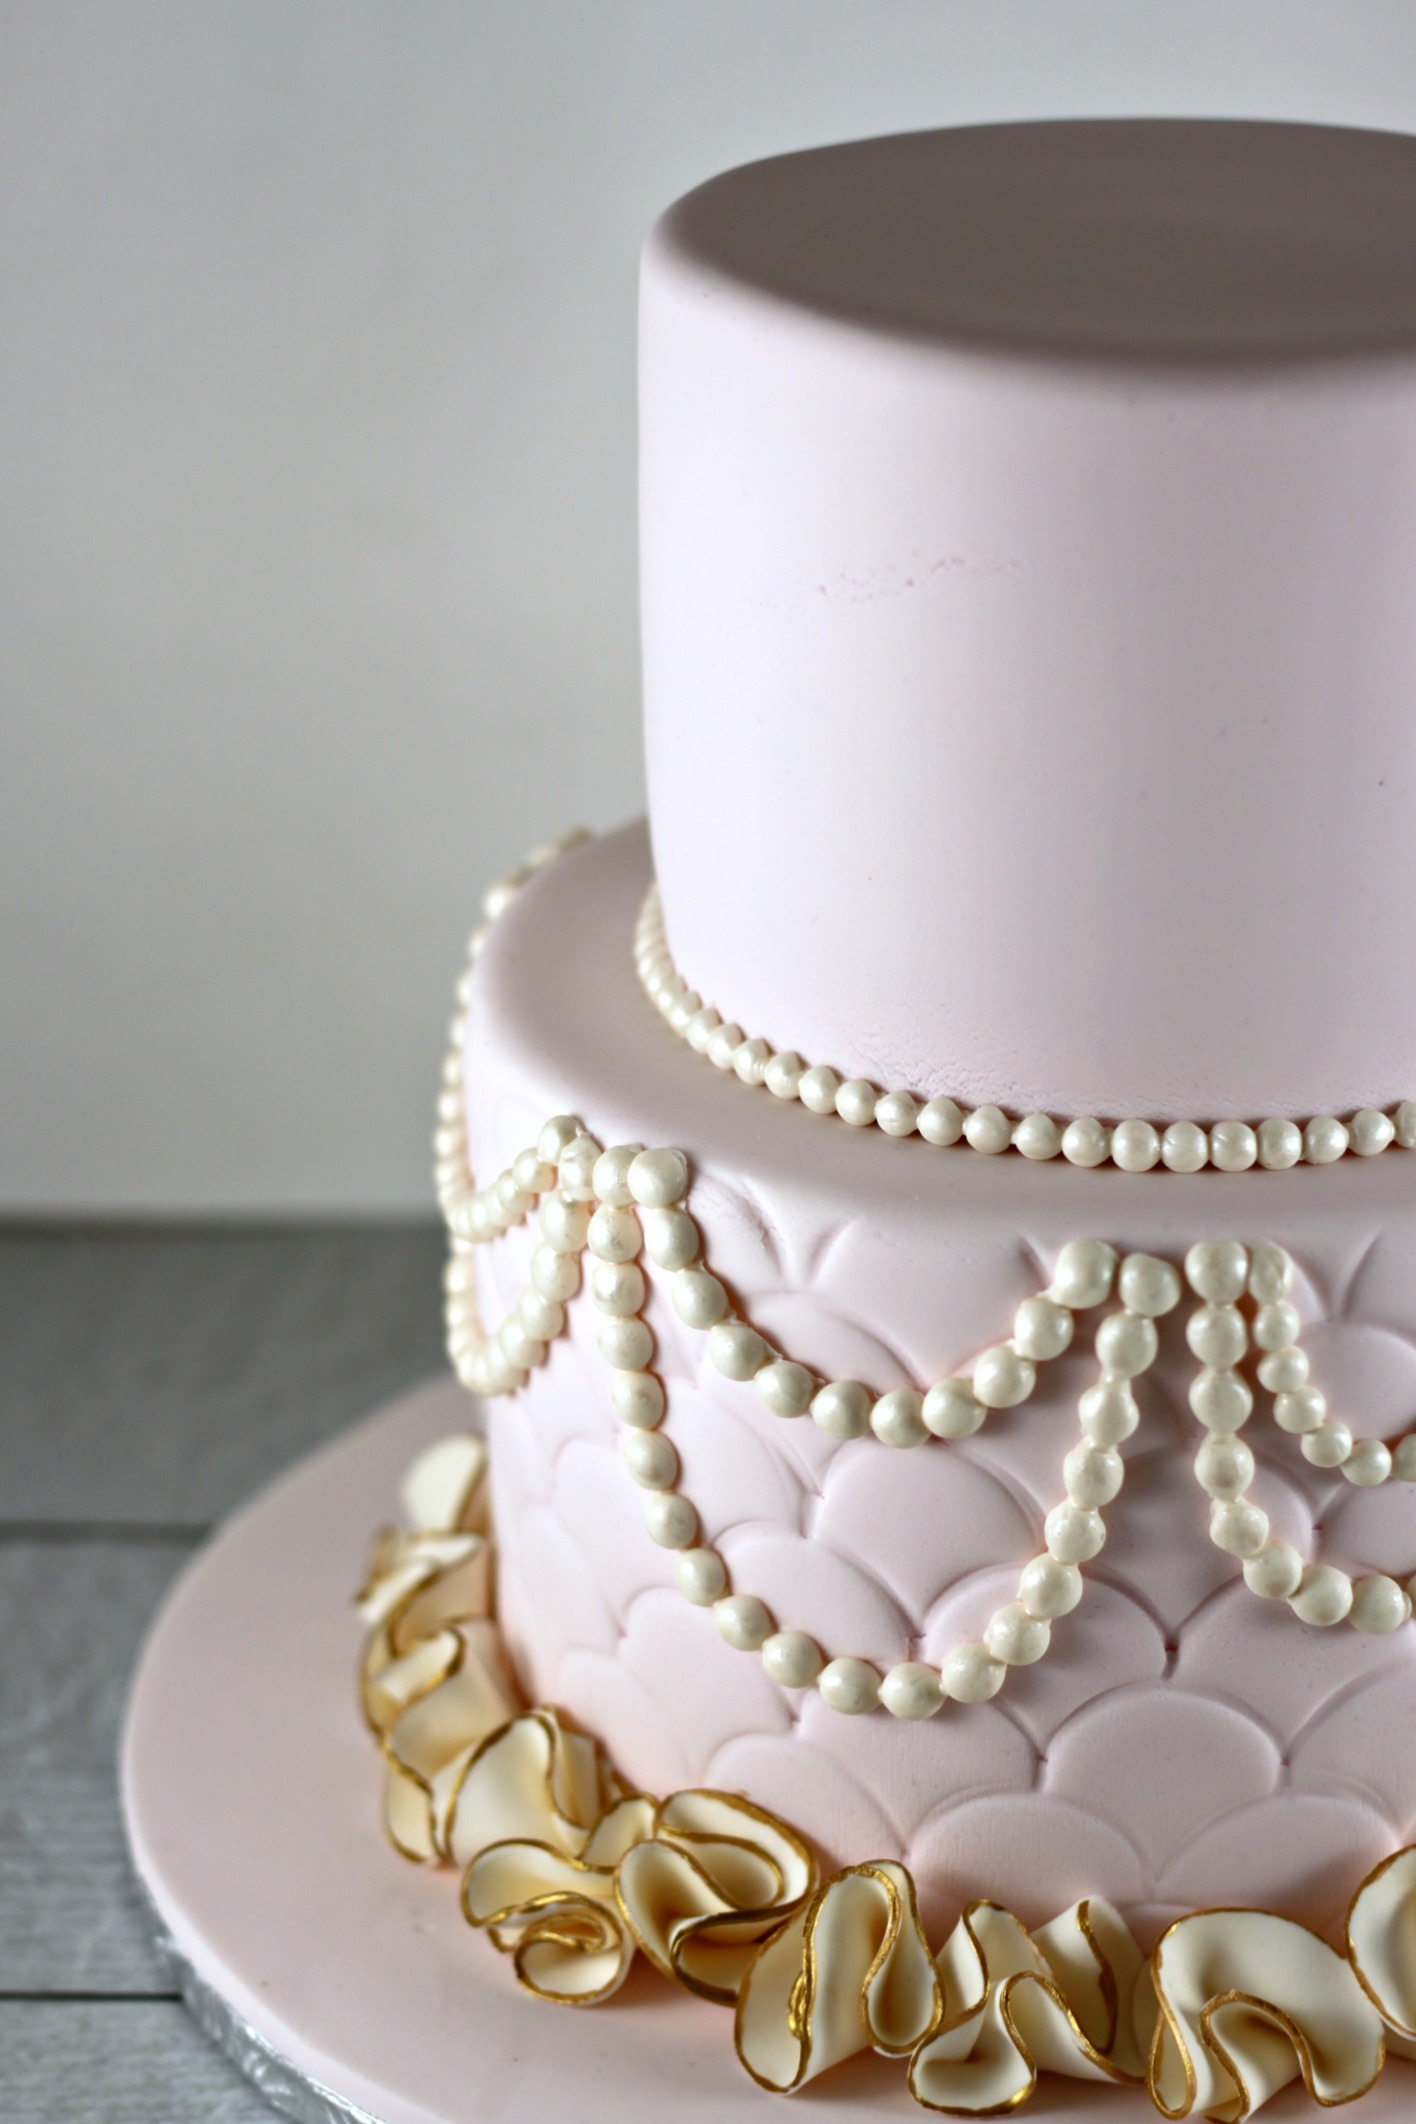 Cake Decorating Gold Pearls : Pink and Gold Pearls and Ruffles Lil Miss Cakes Lil ...